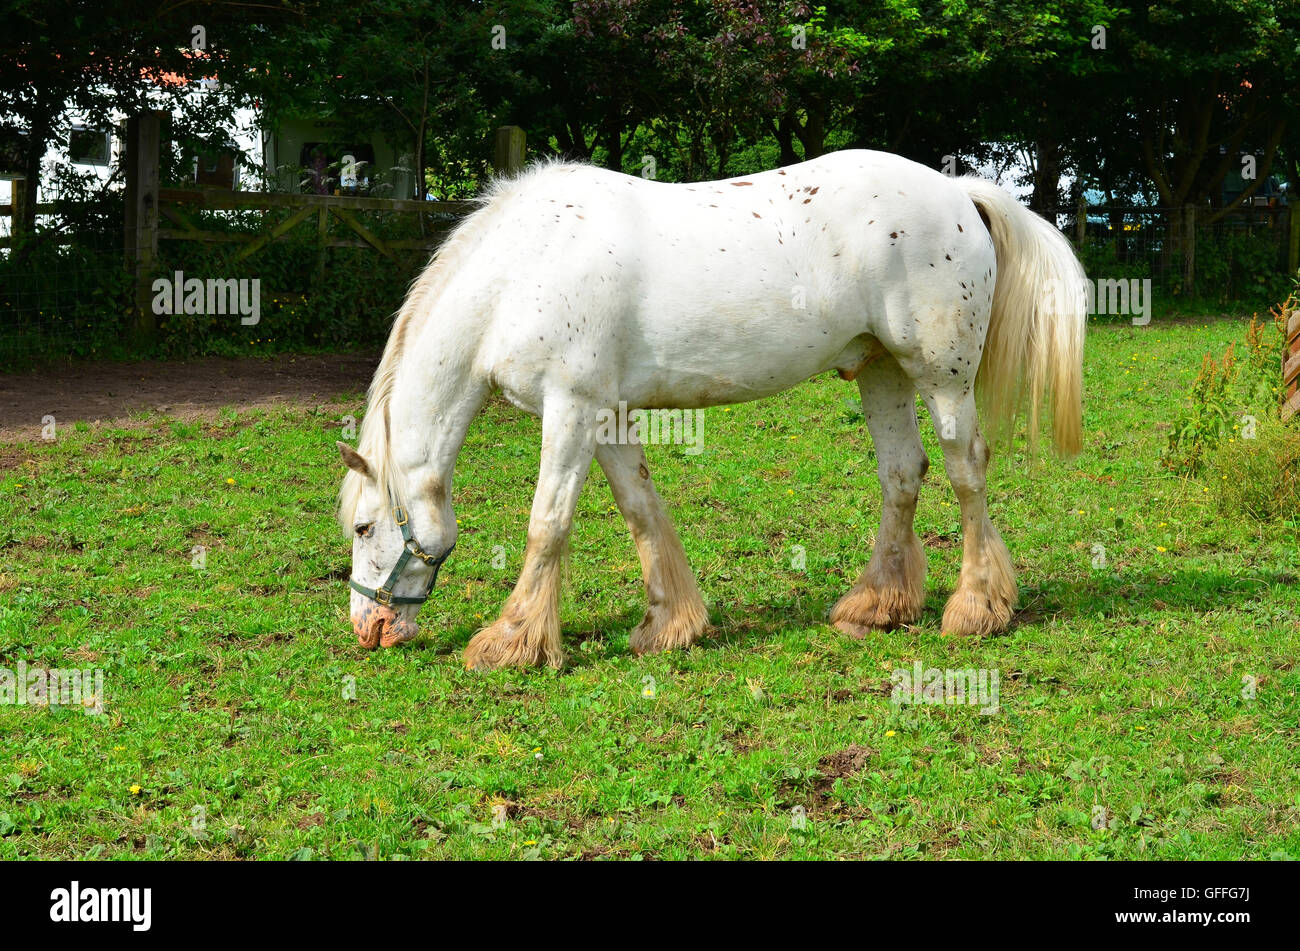 White Horse In A Farm Paddock Stock Photo Alamy